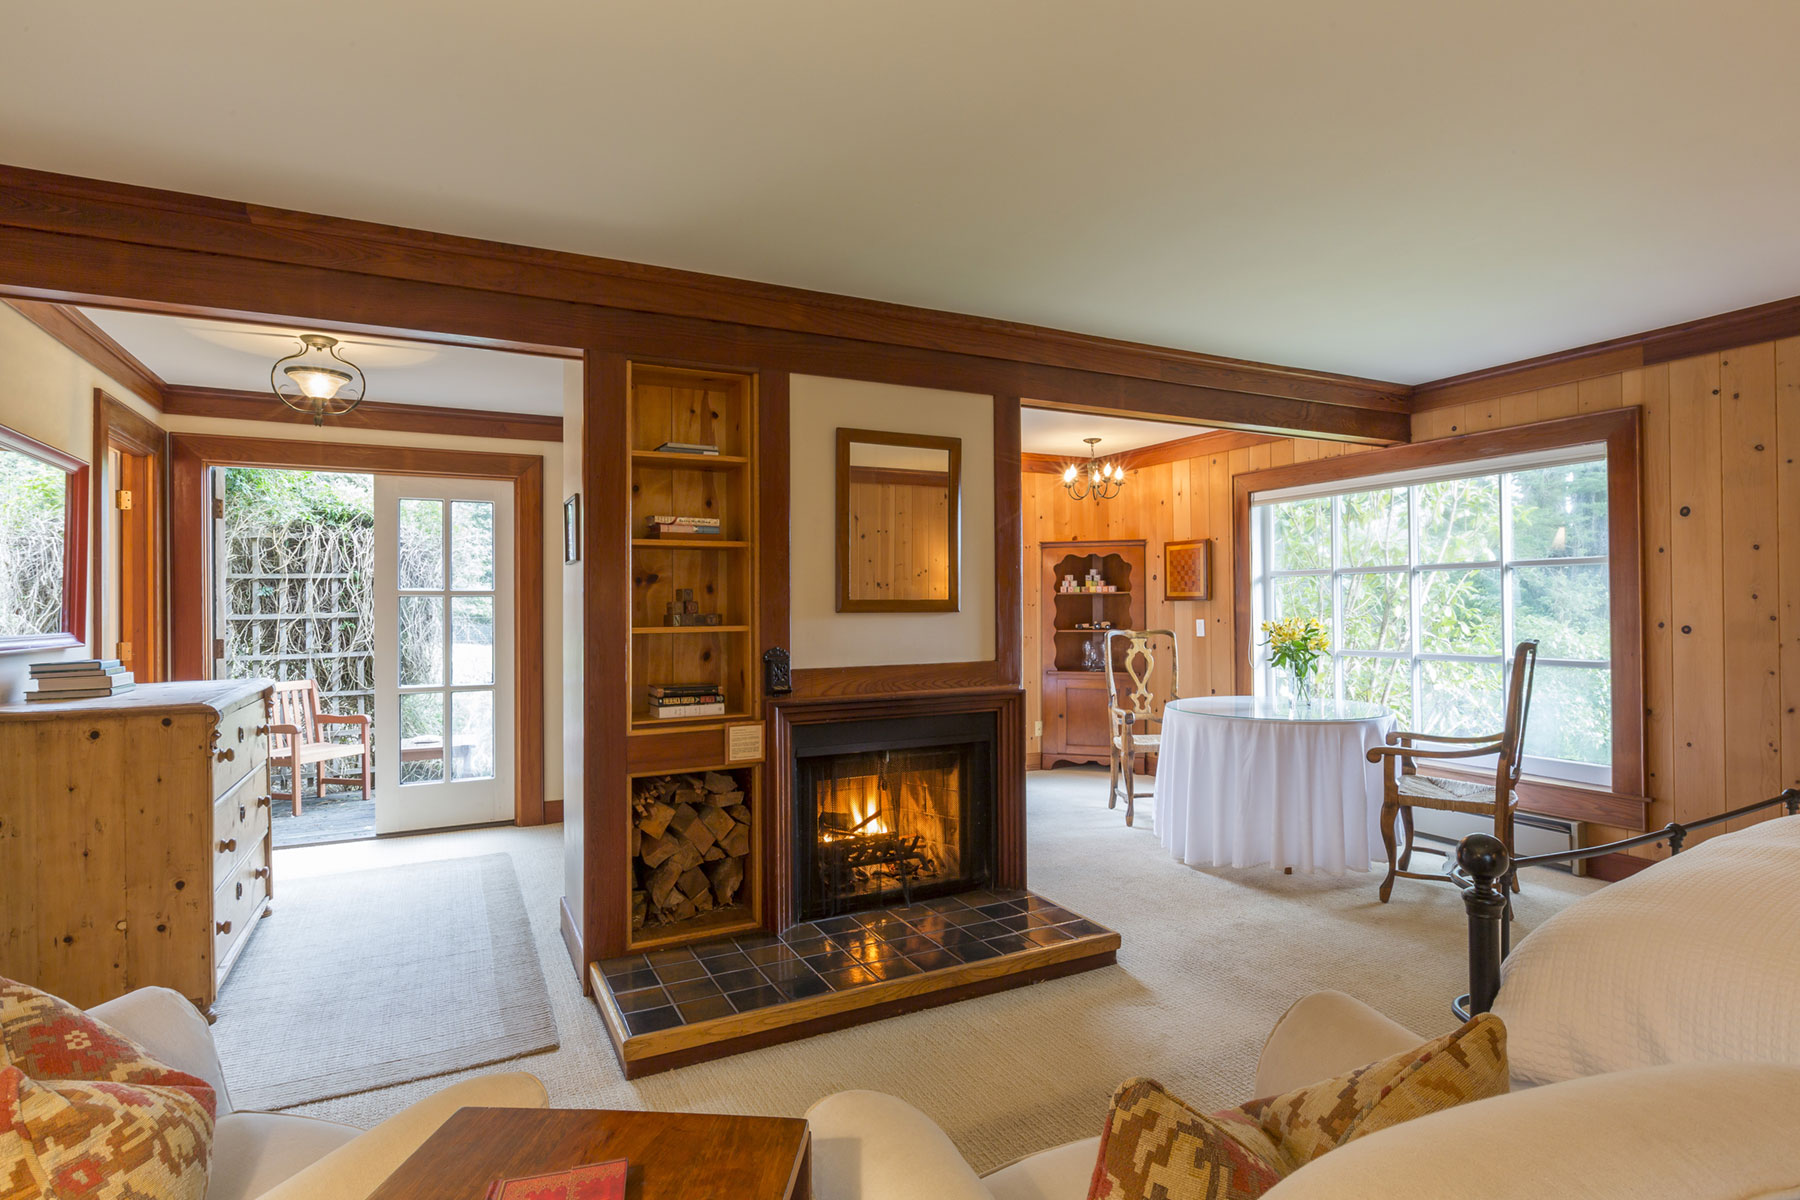 The Pinewood room with pine paneling, fireplace, sitting area, and French doors leading out to the garden.